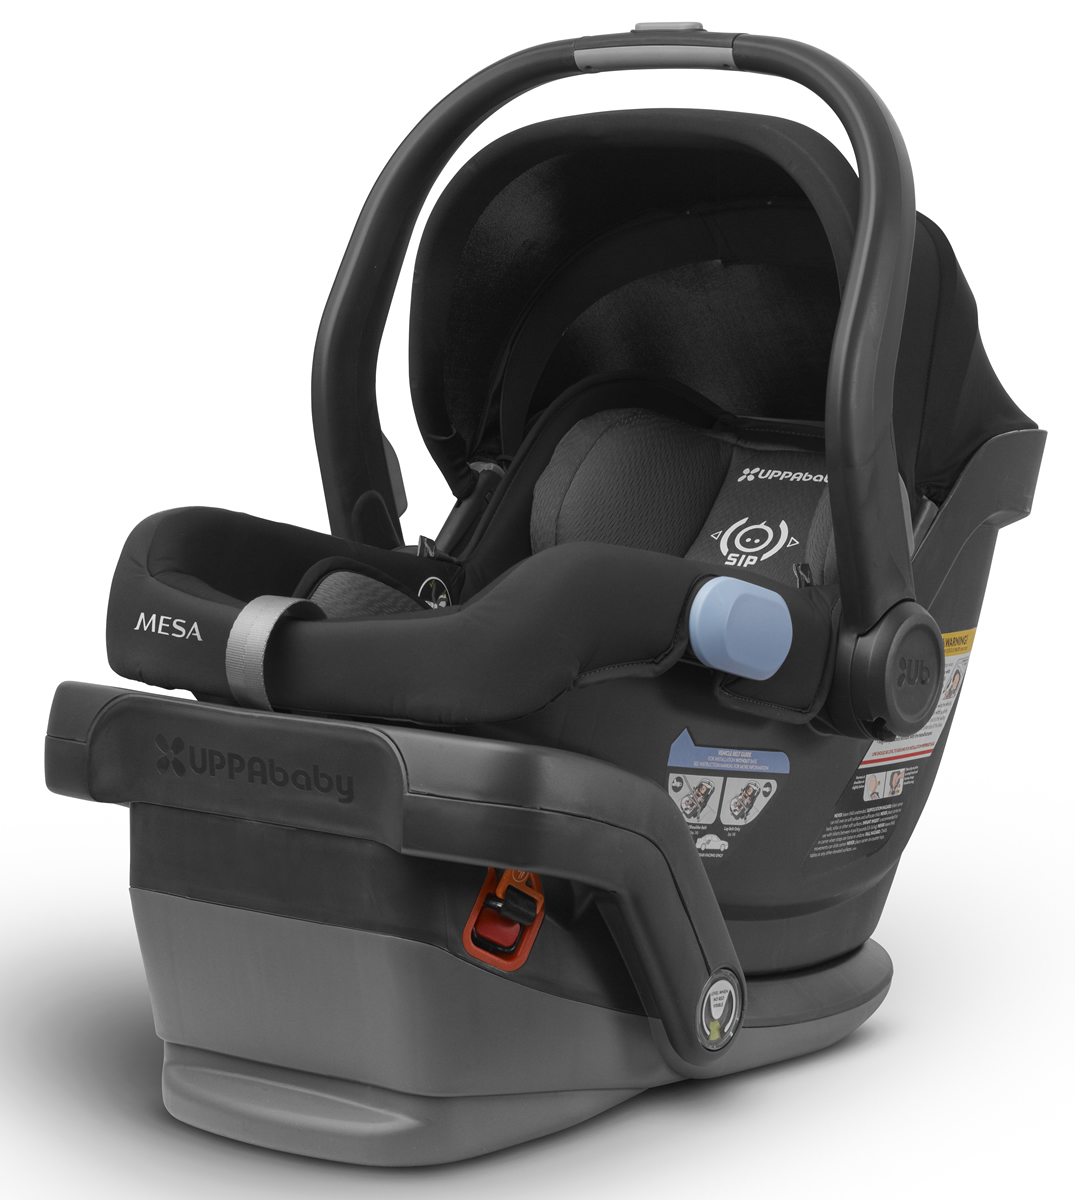 Uppa Baby 2017 / 2018 MESA Infant Car Seat - Jake (Black)